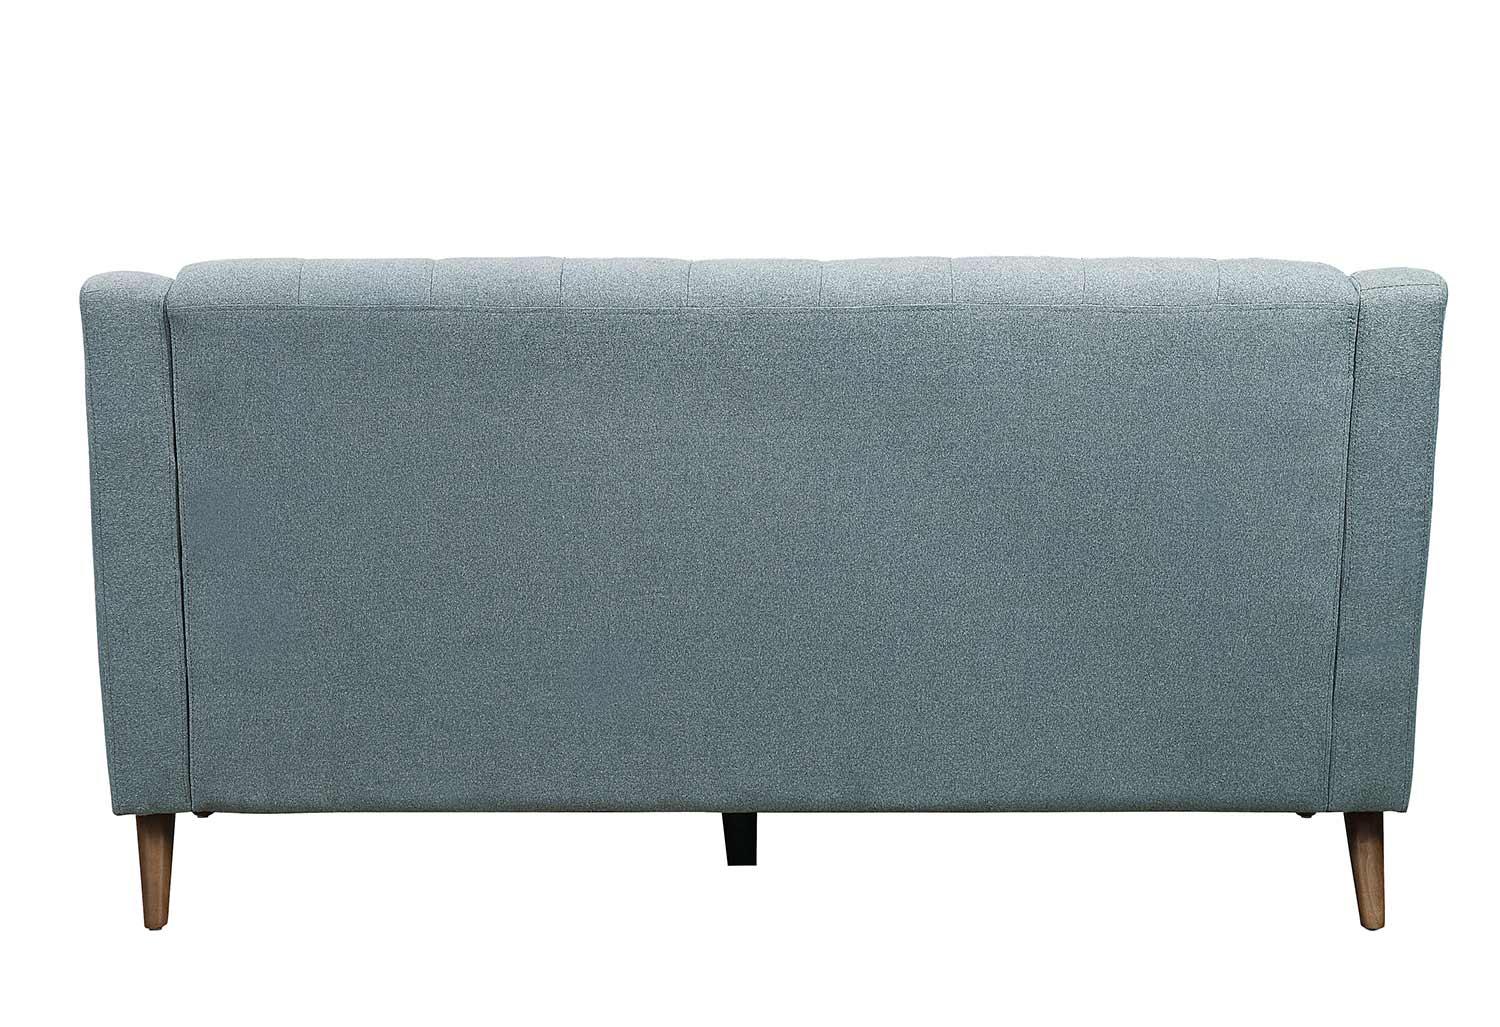 Homelegance Basenji Sofa - Gray